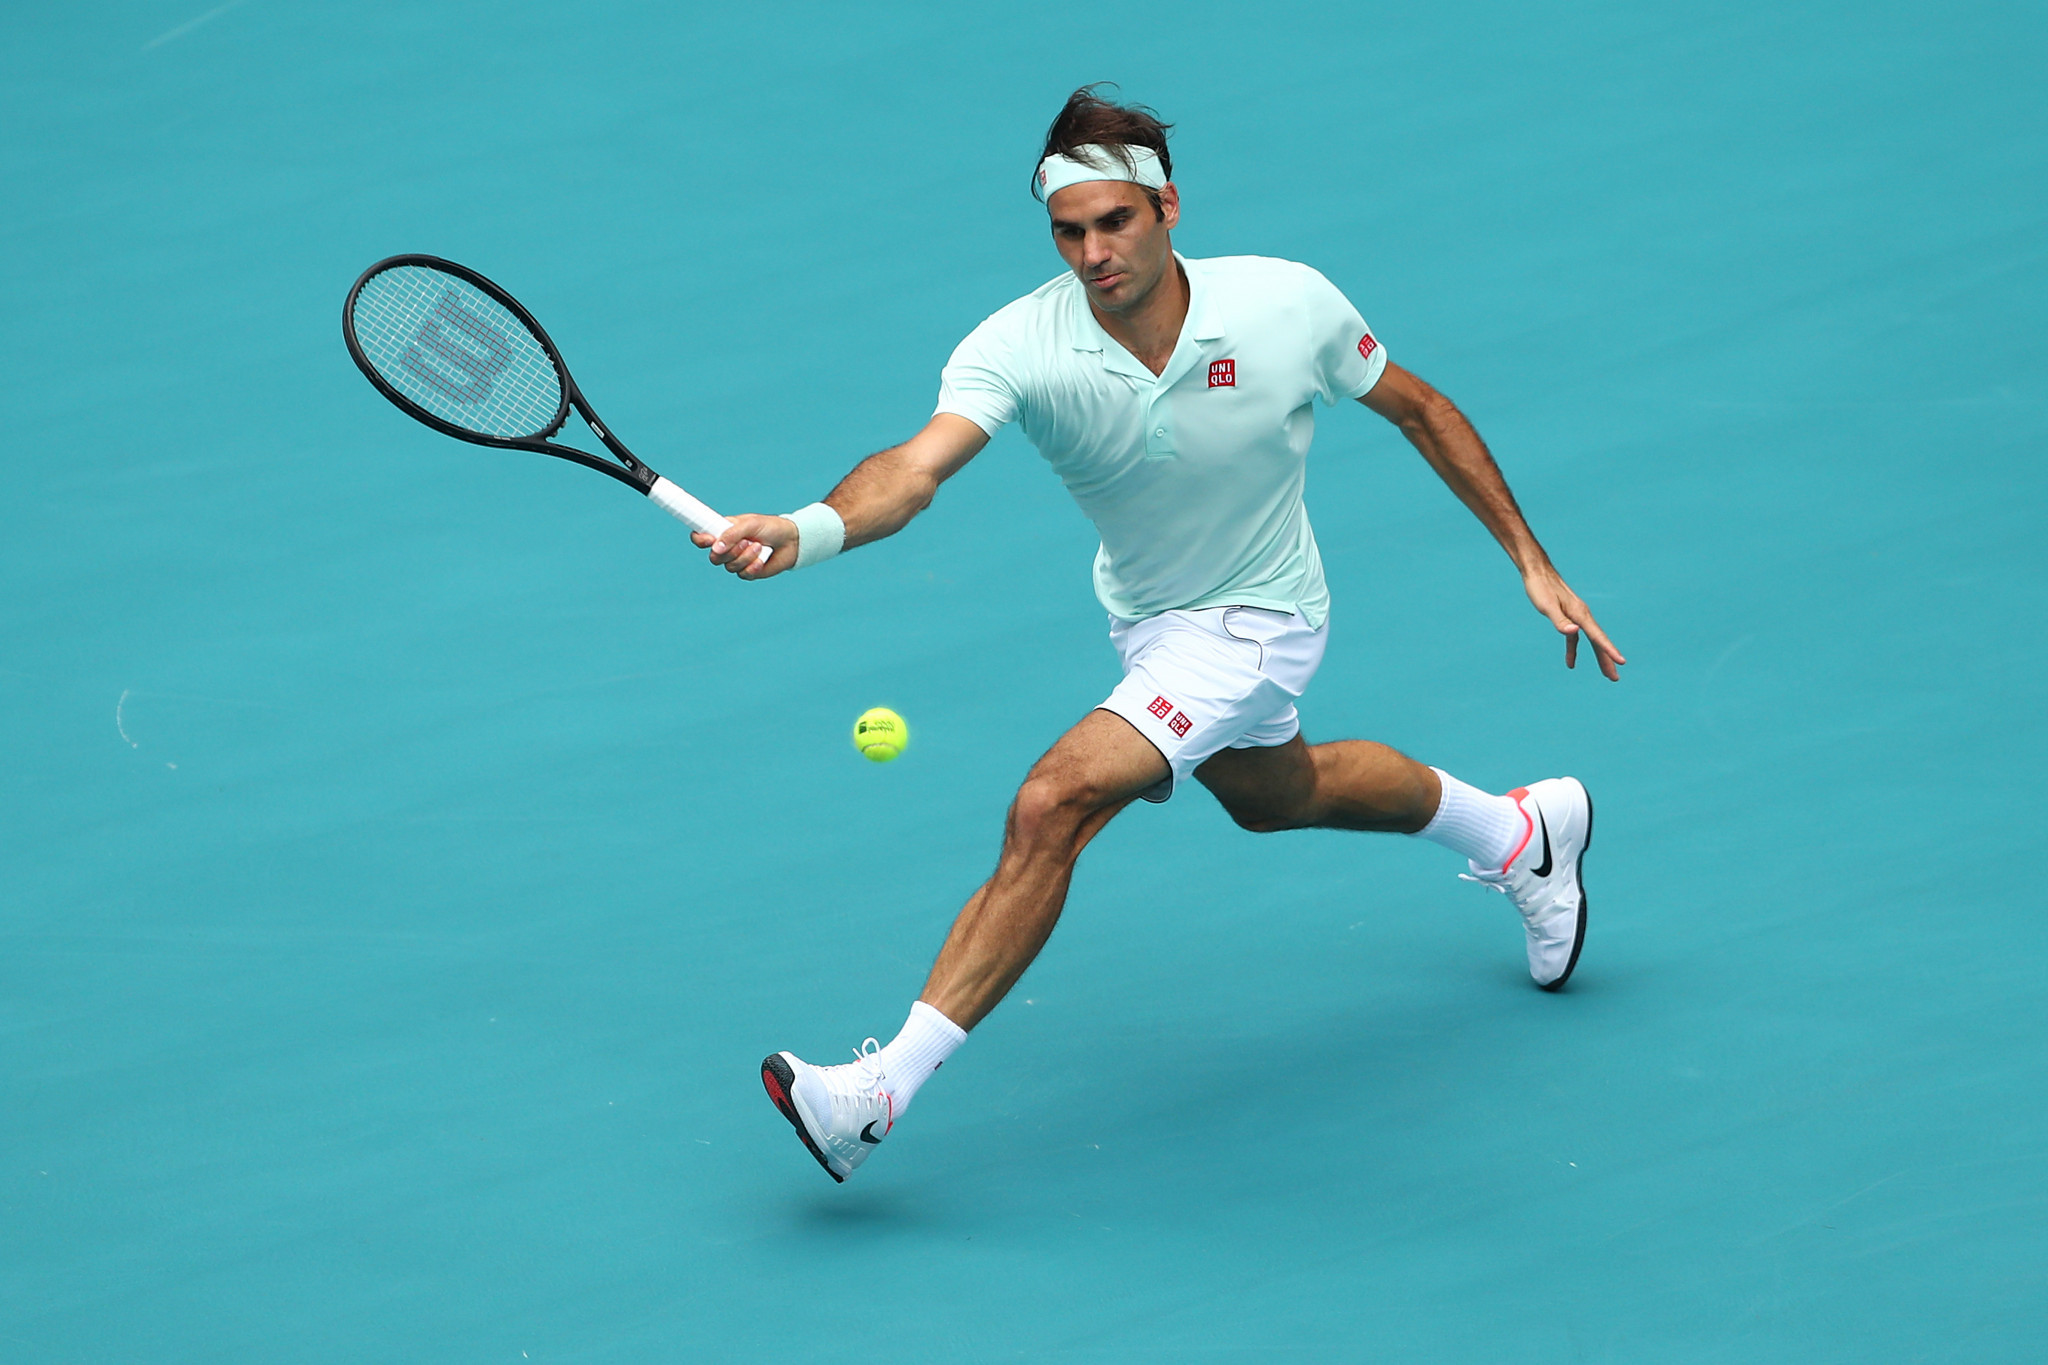 Switzerland's Roger Federer beat John Isner of the United States to win the Miami Open ©Getty Images